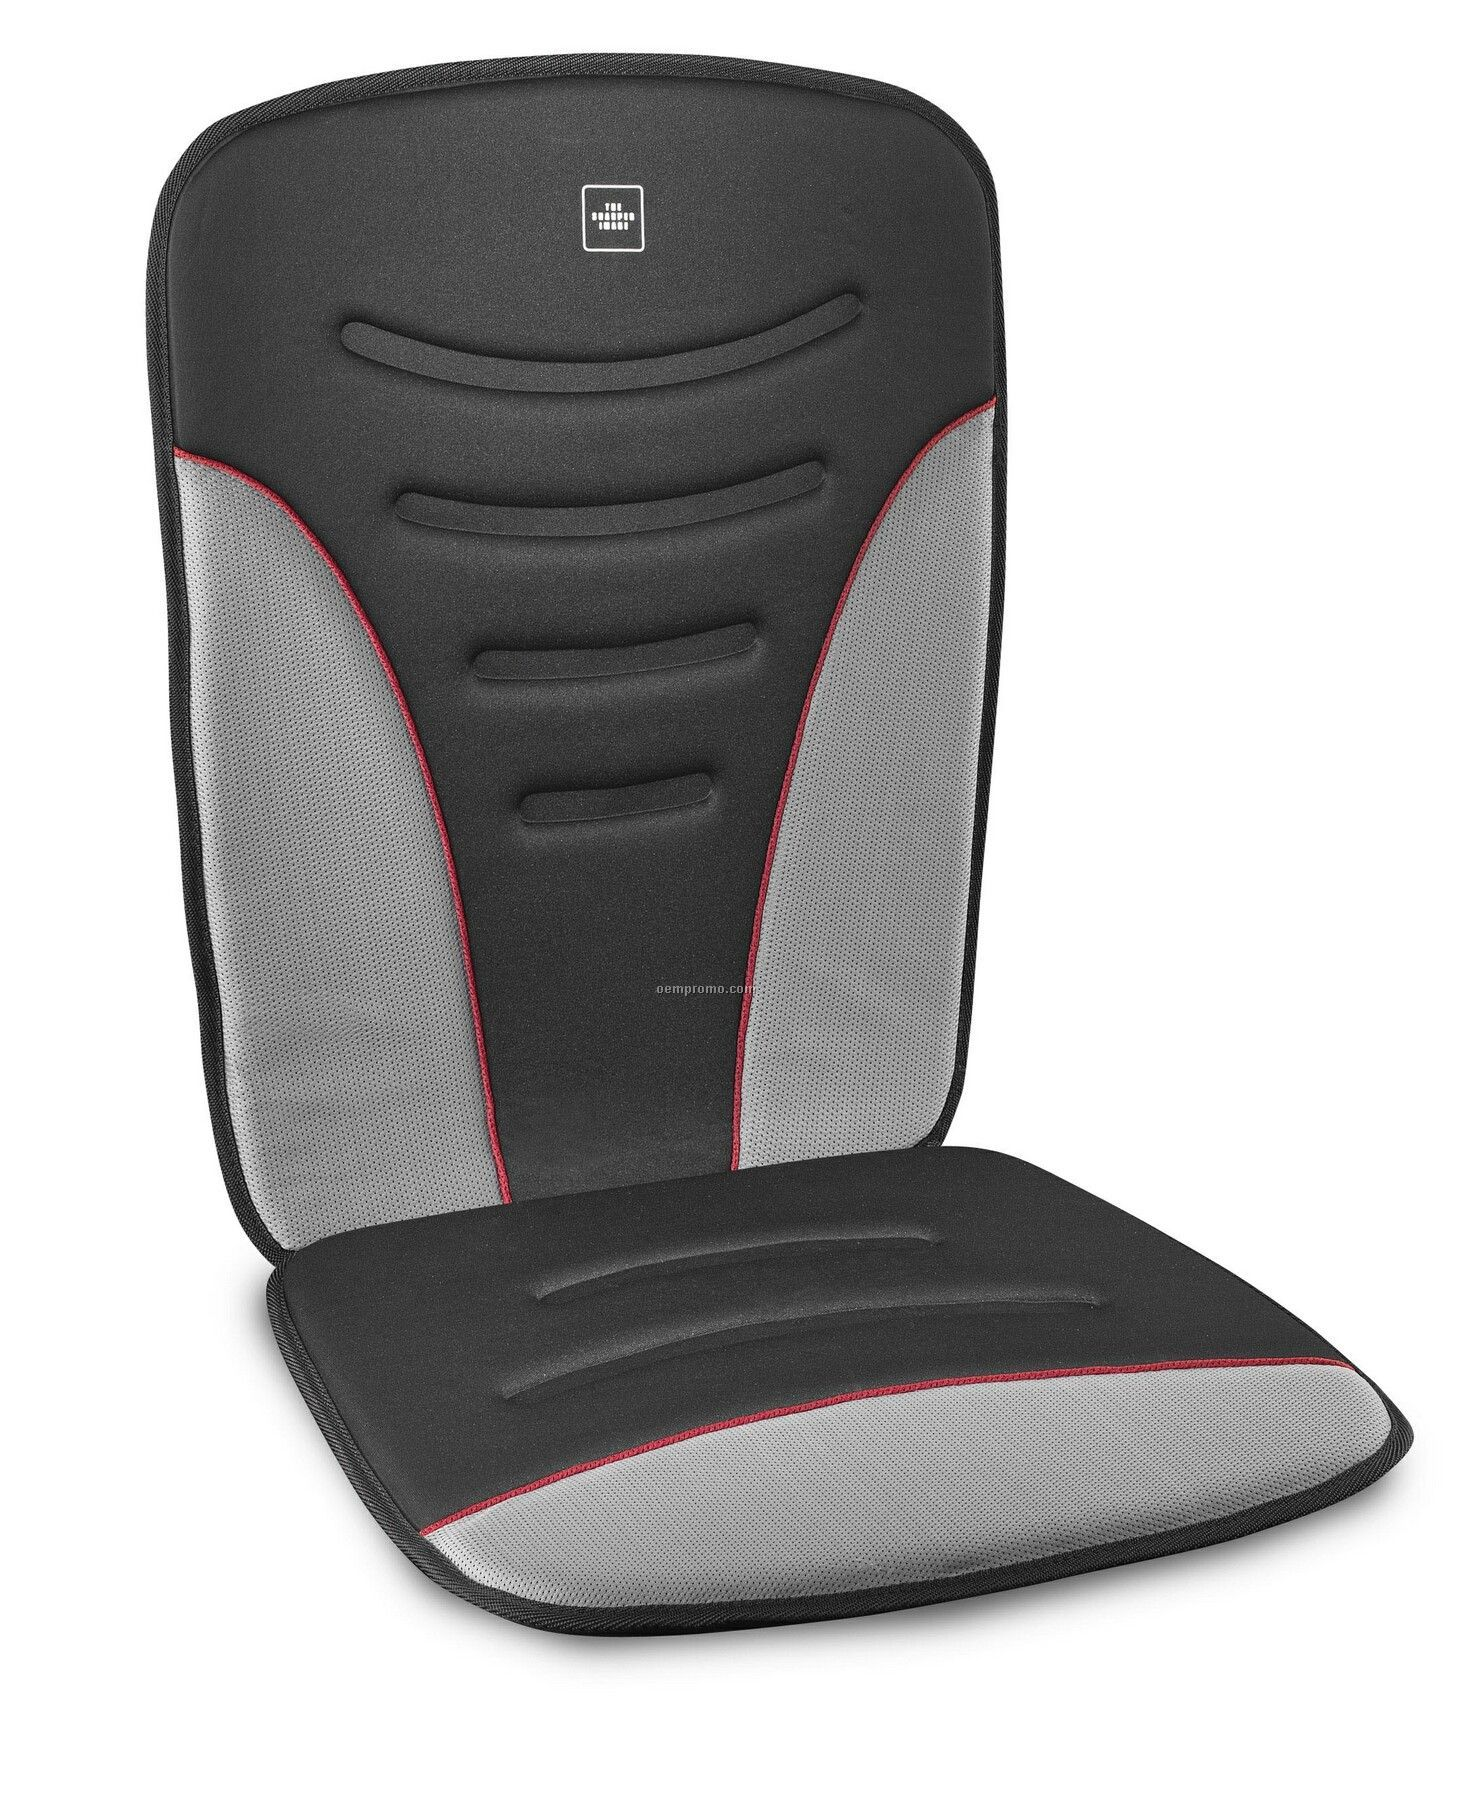 The Sharper Image Heated Car Seat Cushion China Wholesale